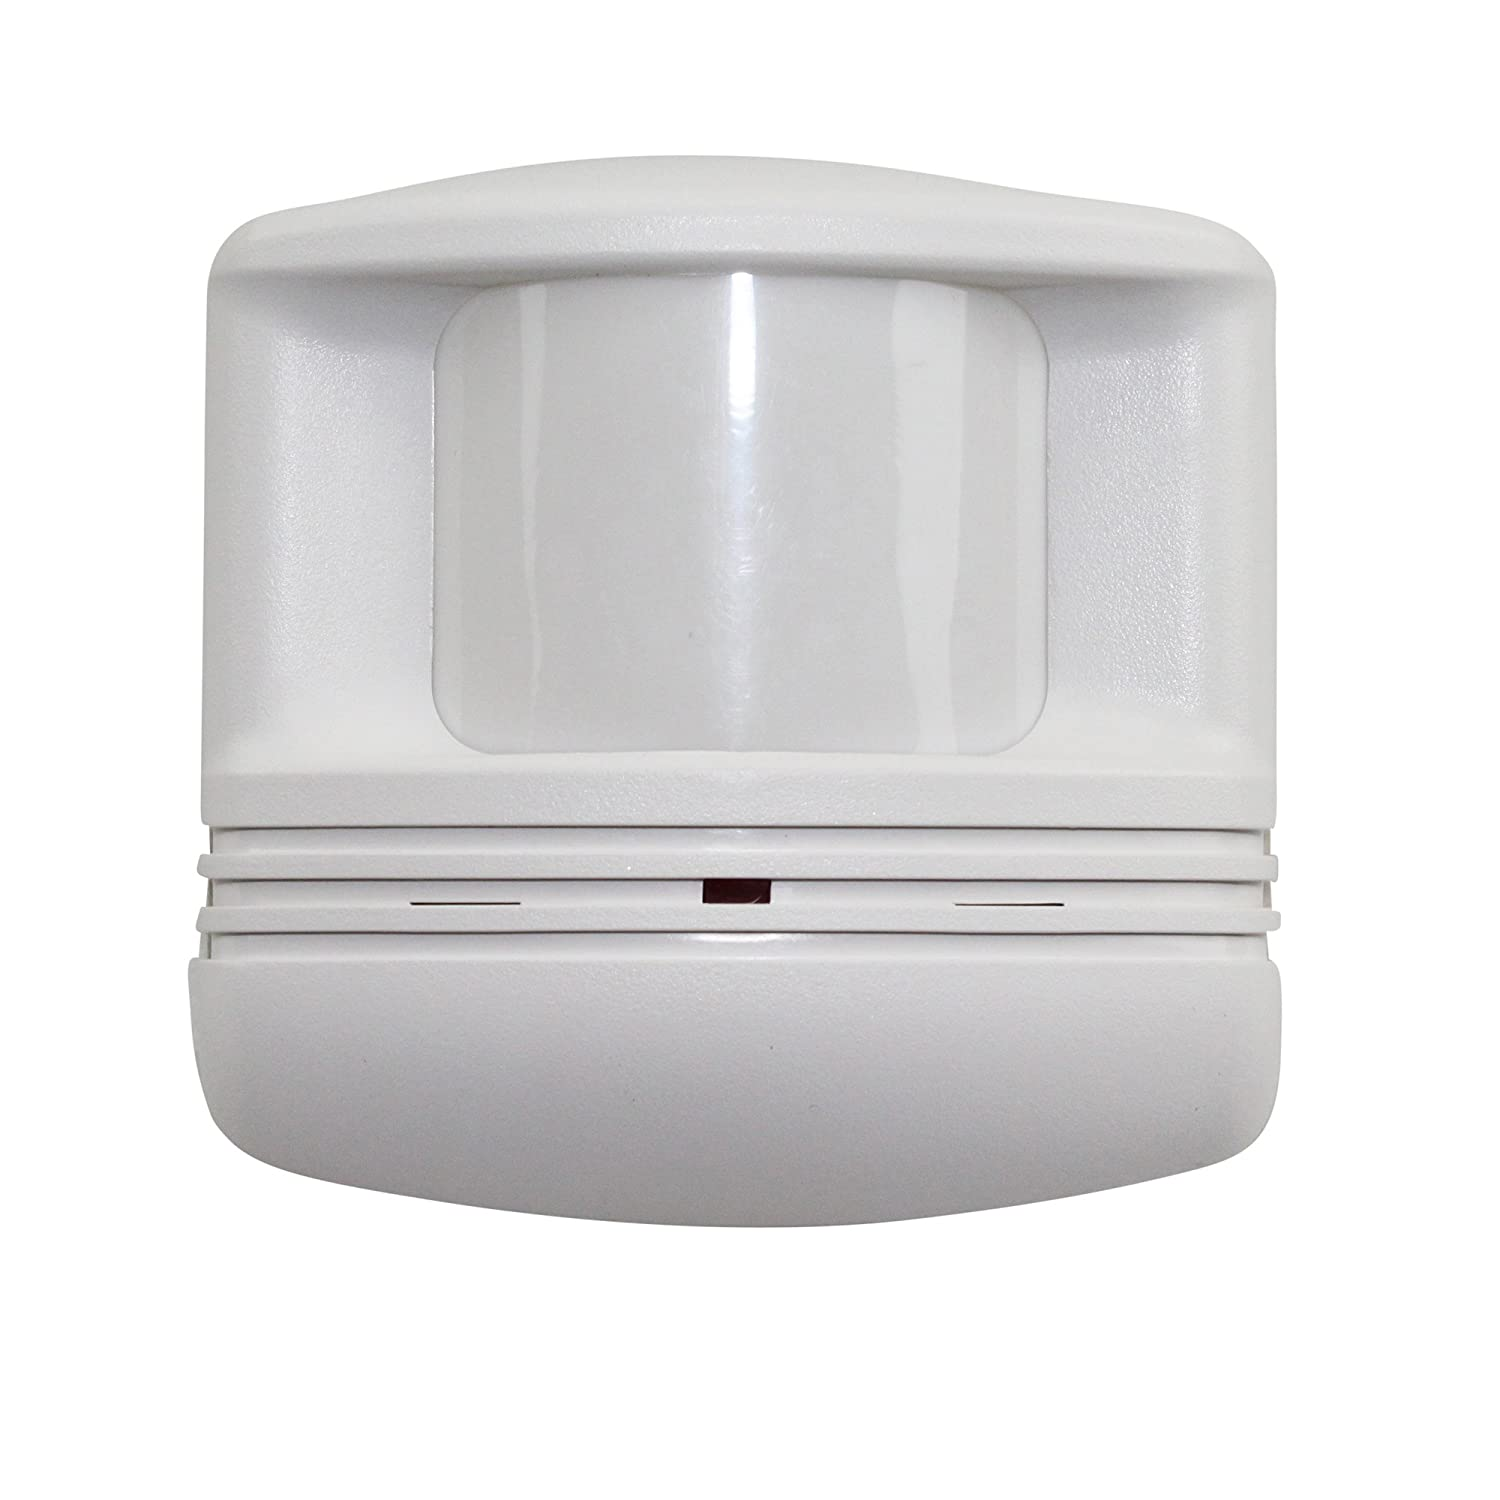 Wattstopper Occupancy Sensor Ceiling: WattStopper CX-100 Occupancy Sensor, Ceiling/Wall, 2000 Sq